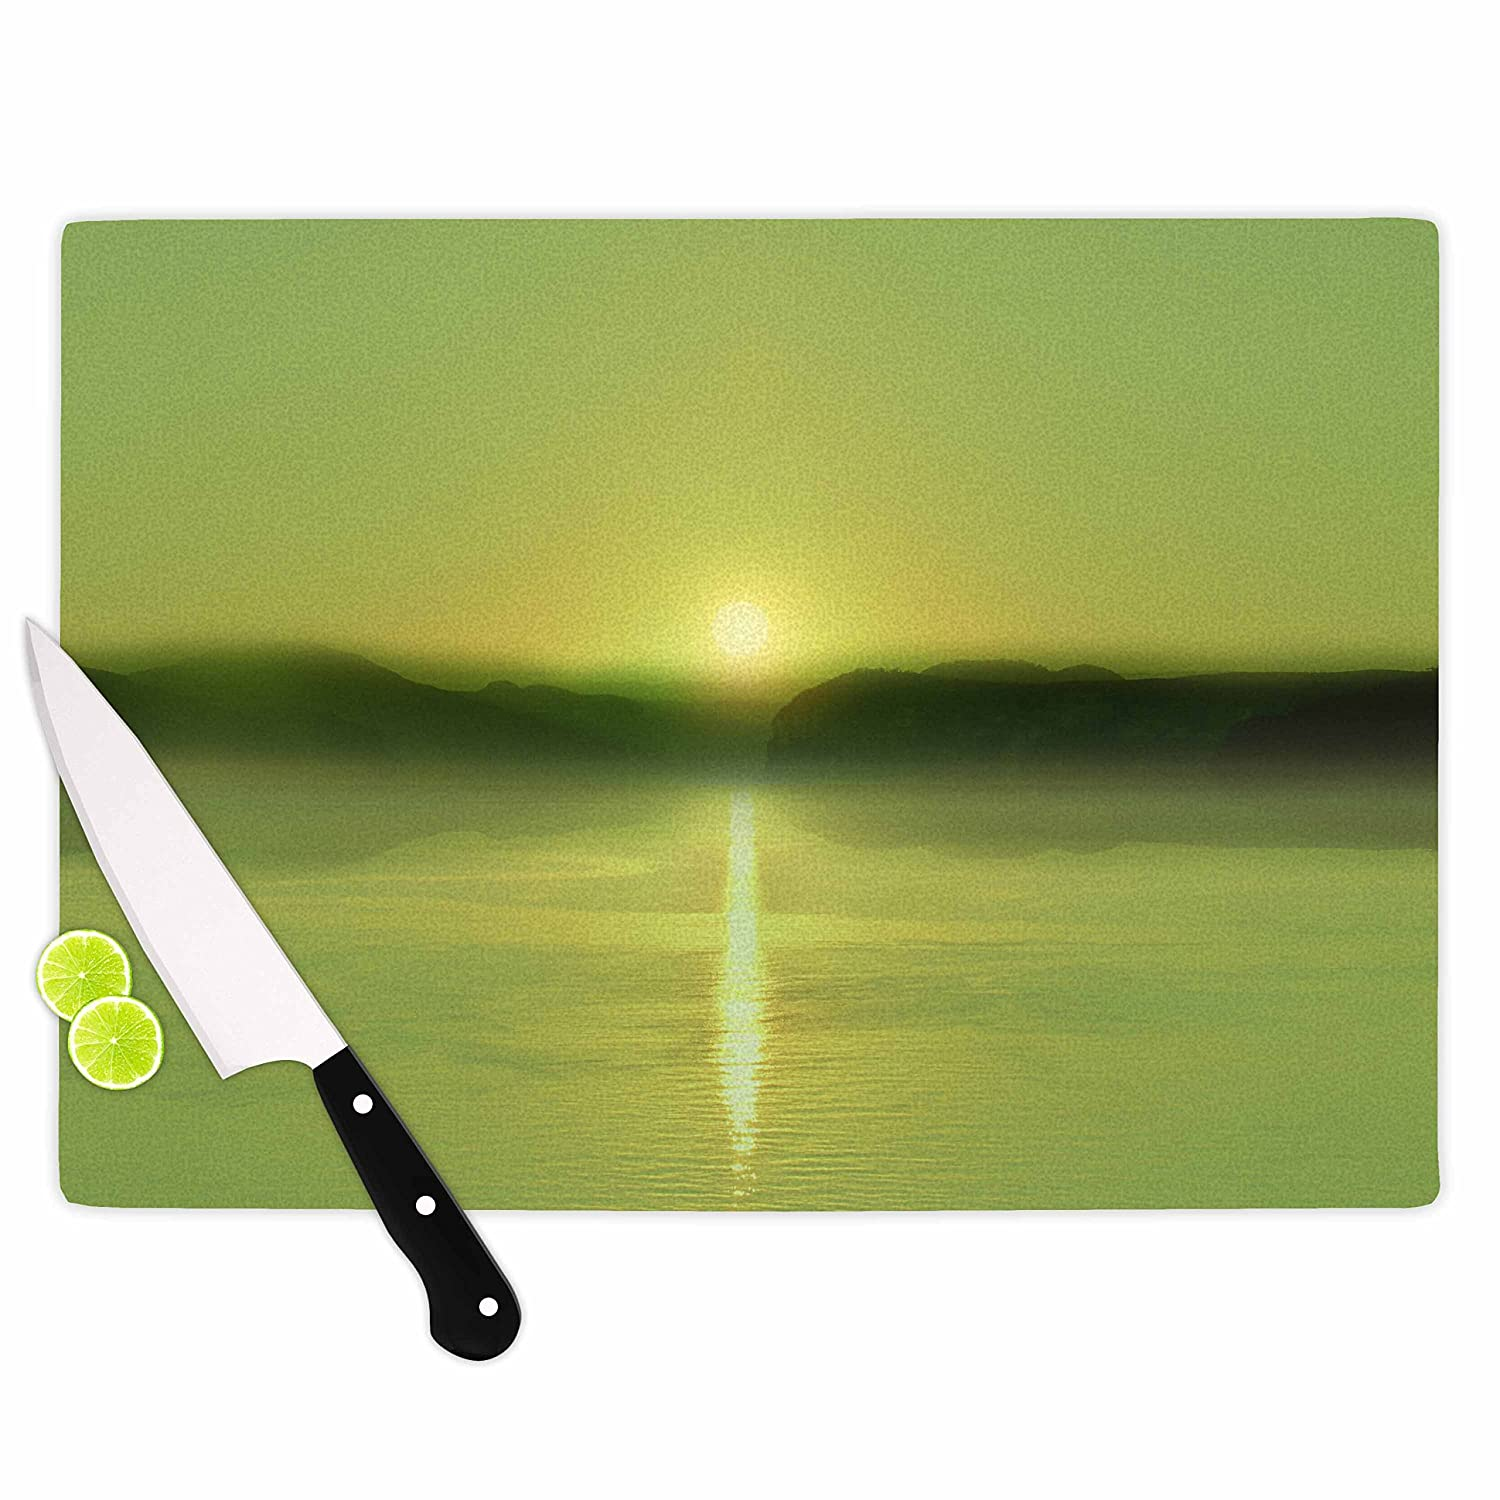 Multicolor KESS InHouse Viviana GonzalezPastel Vibes 51 Greenery Green Yellow Photography Cutting Board 11.5 x 15.75